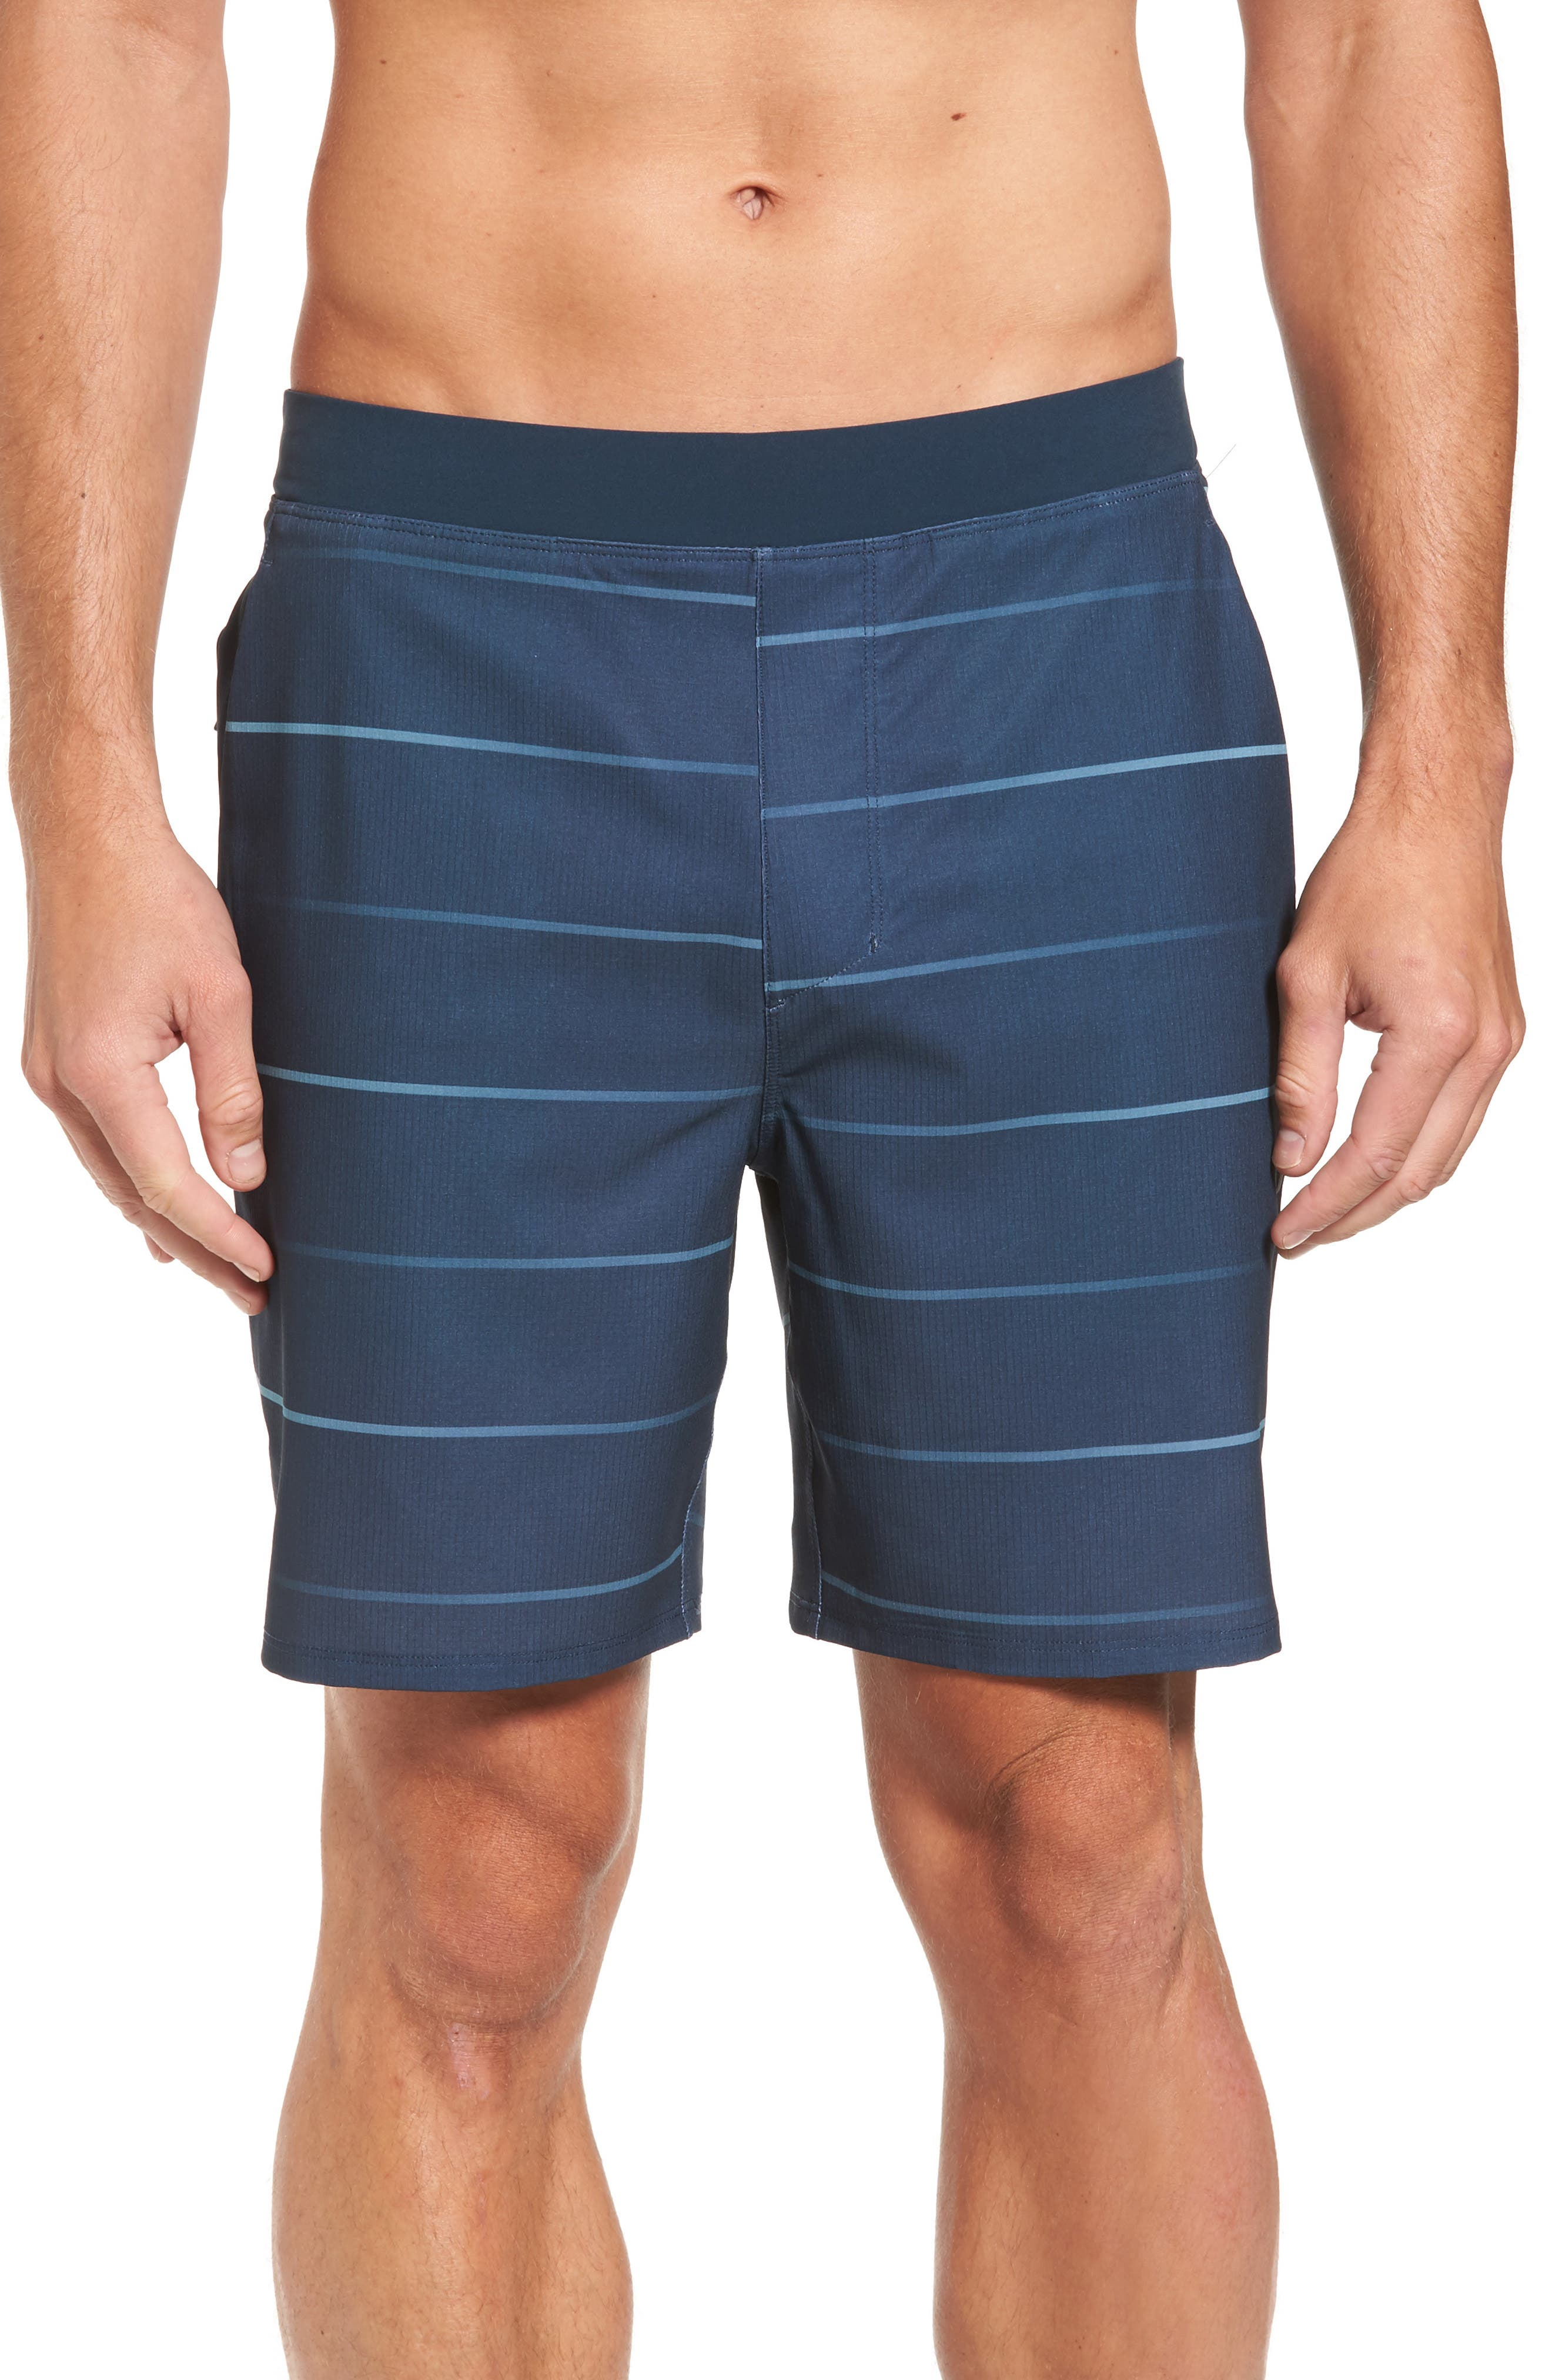 Alpha Trainer Stripe Shorts,                             Main thumbnail 1, color,                             Armory Navy